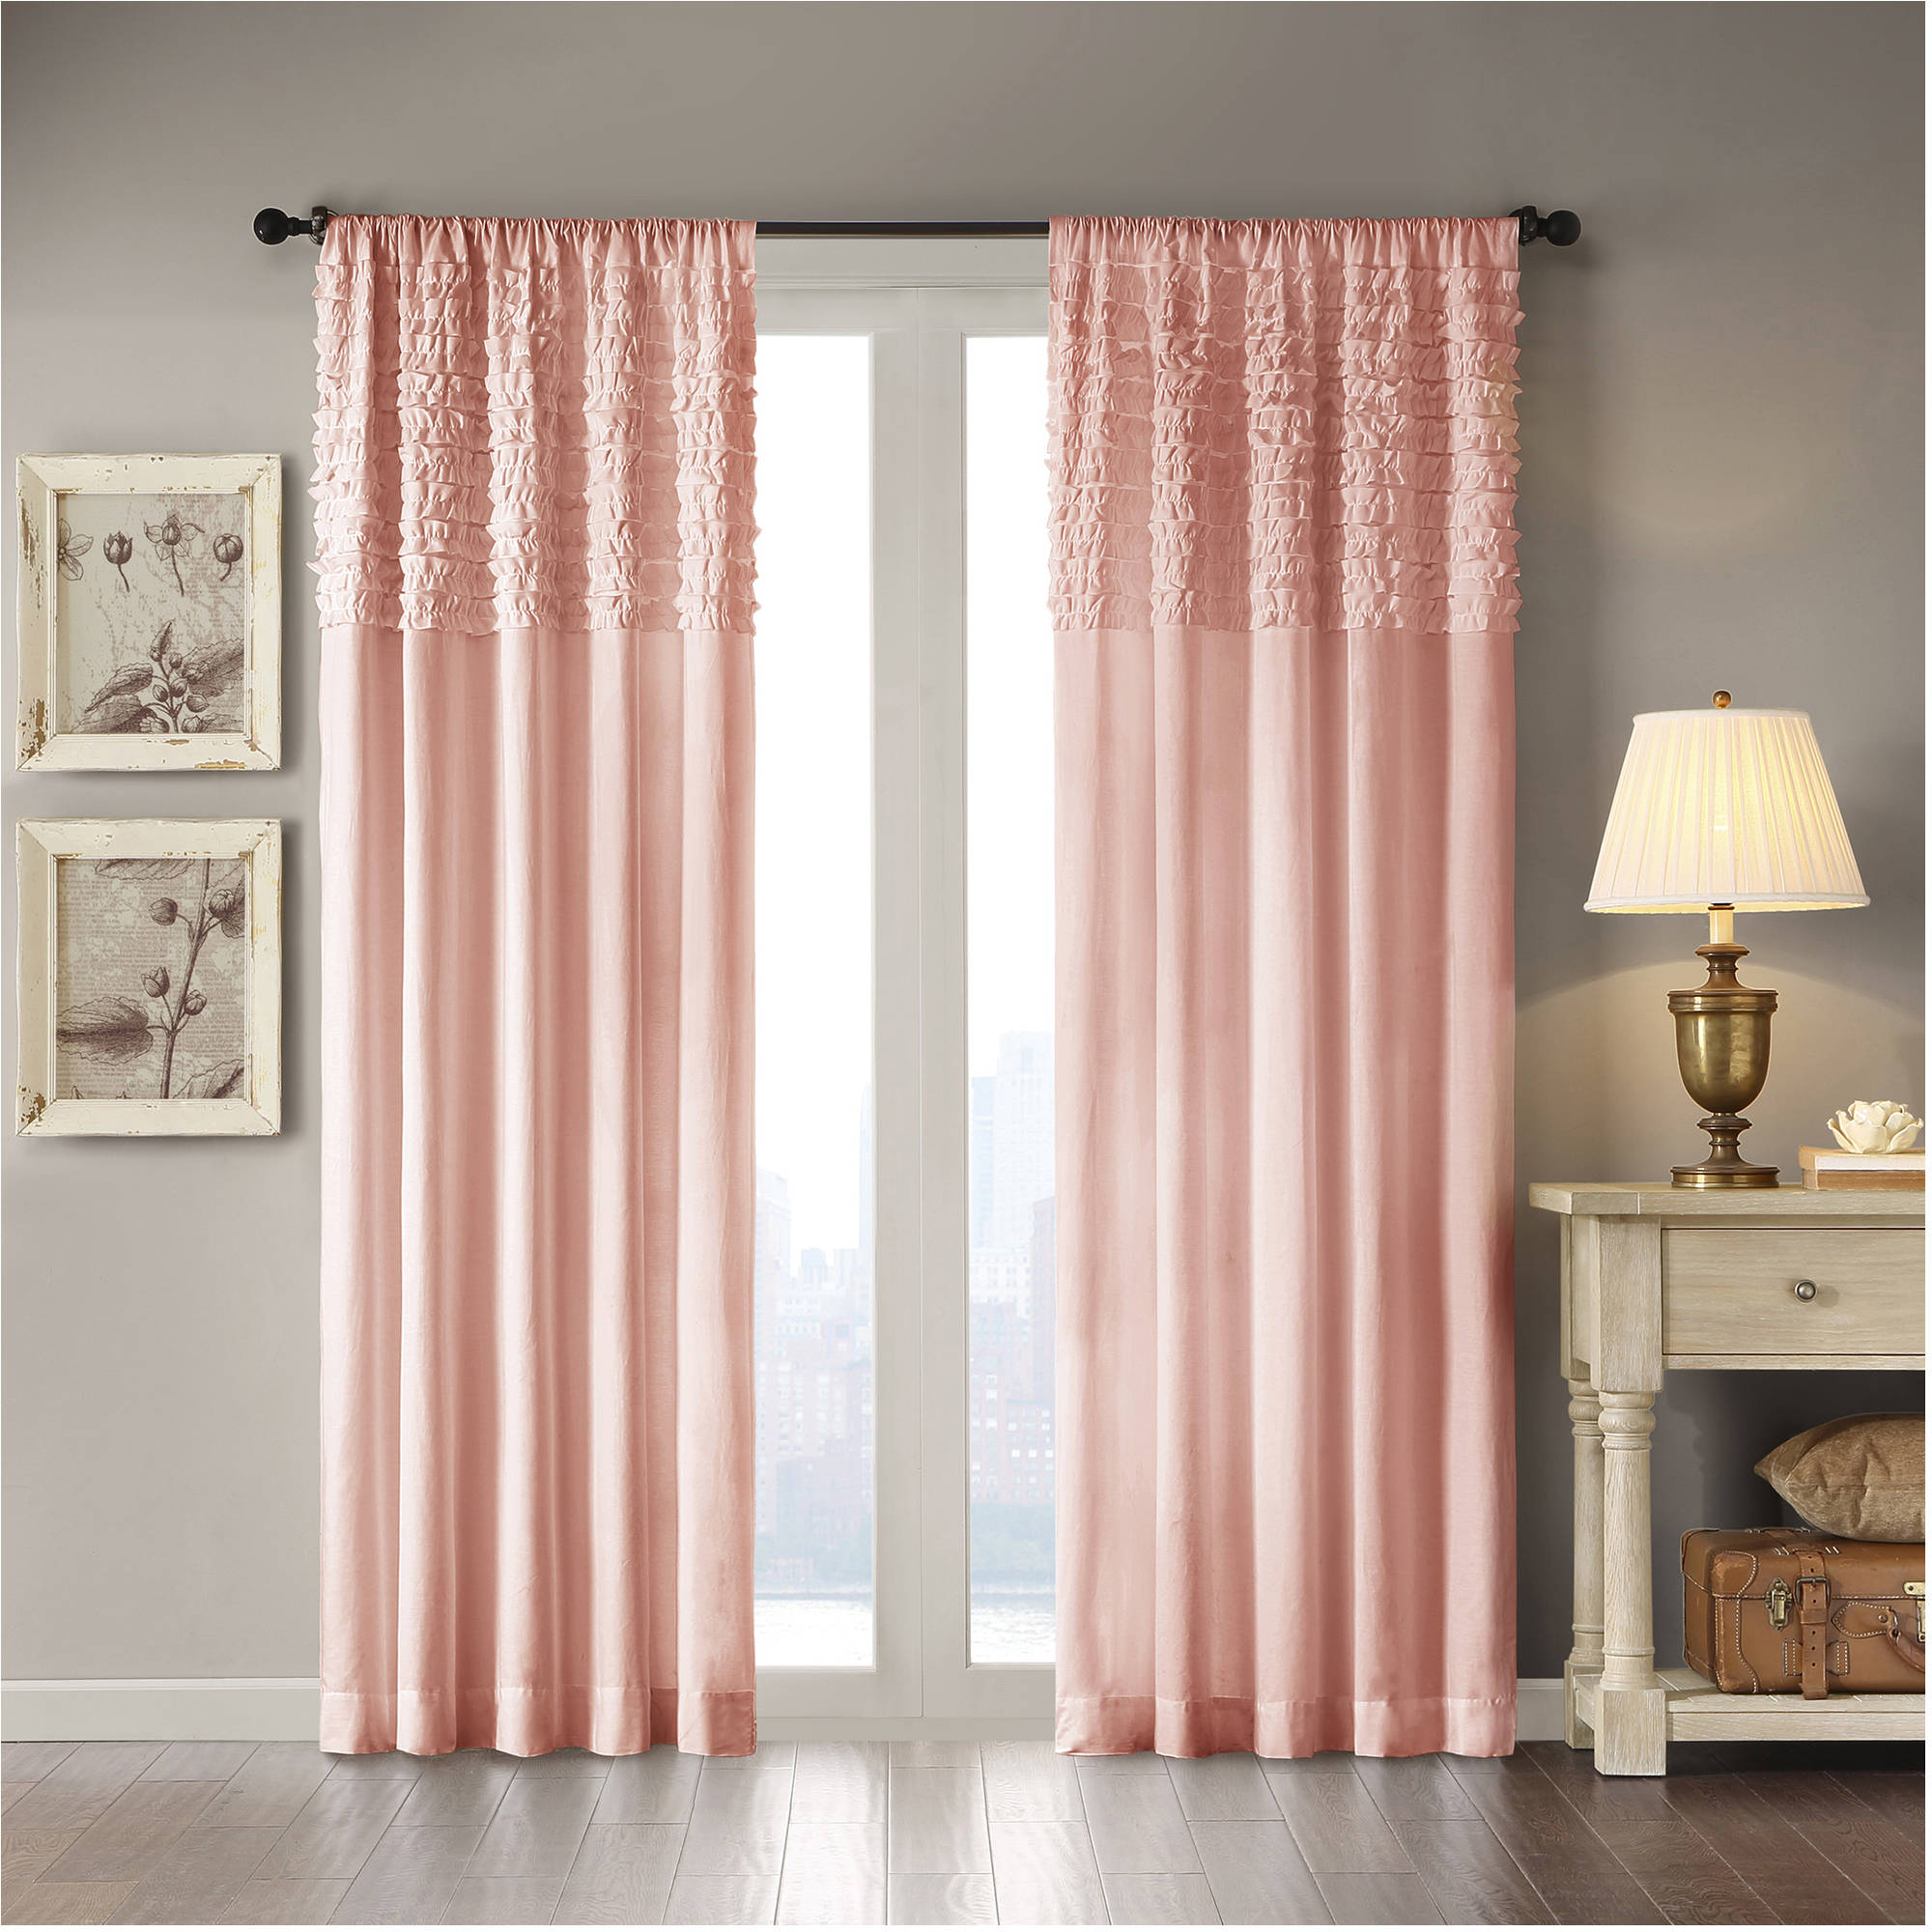 amazon ruffle country curtains white solid park for room fabric com window panel rod living dp curtain madison cottage bedroom pocket bessie